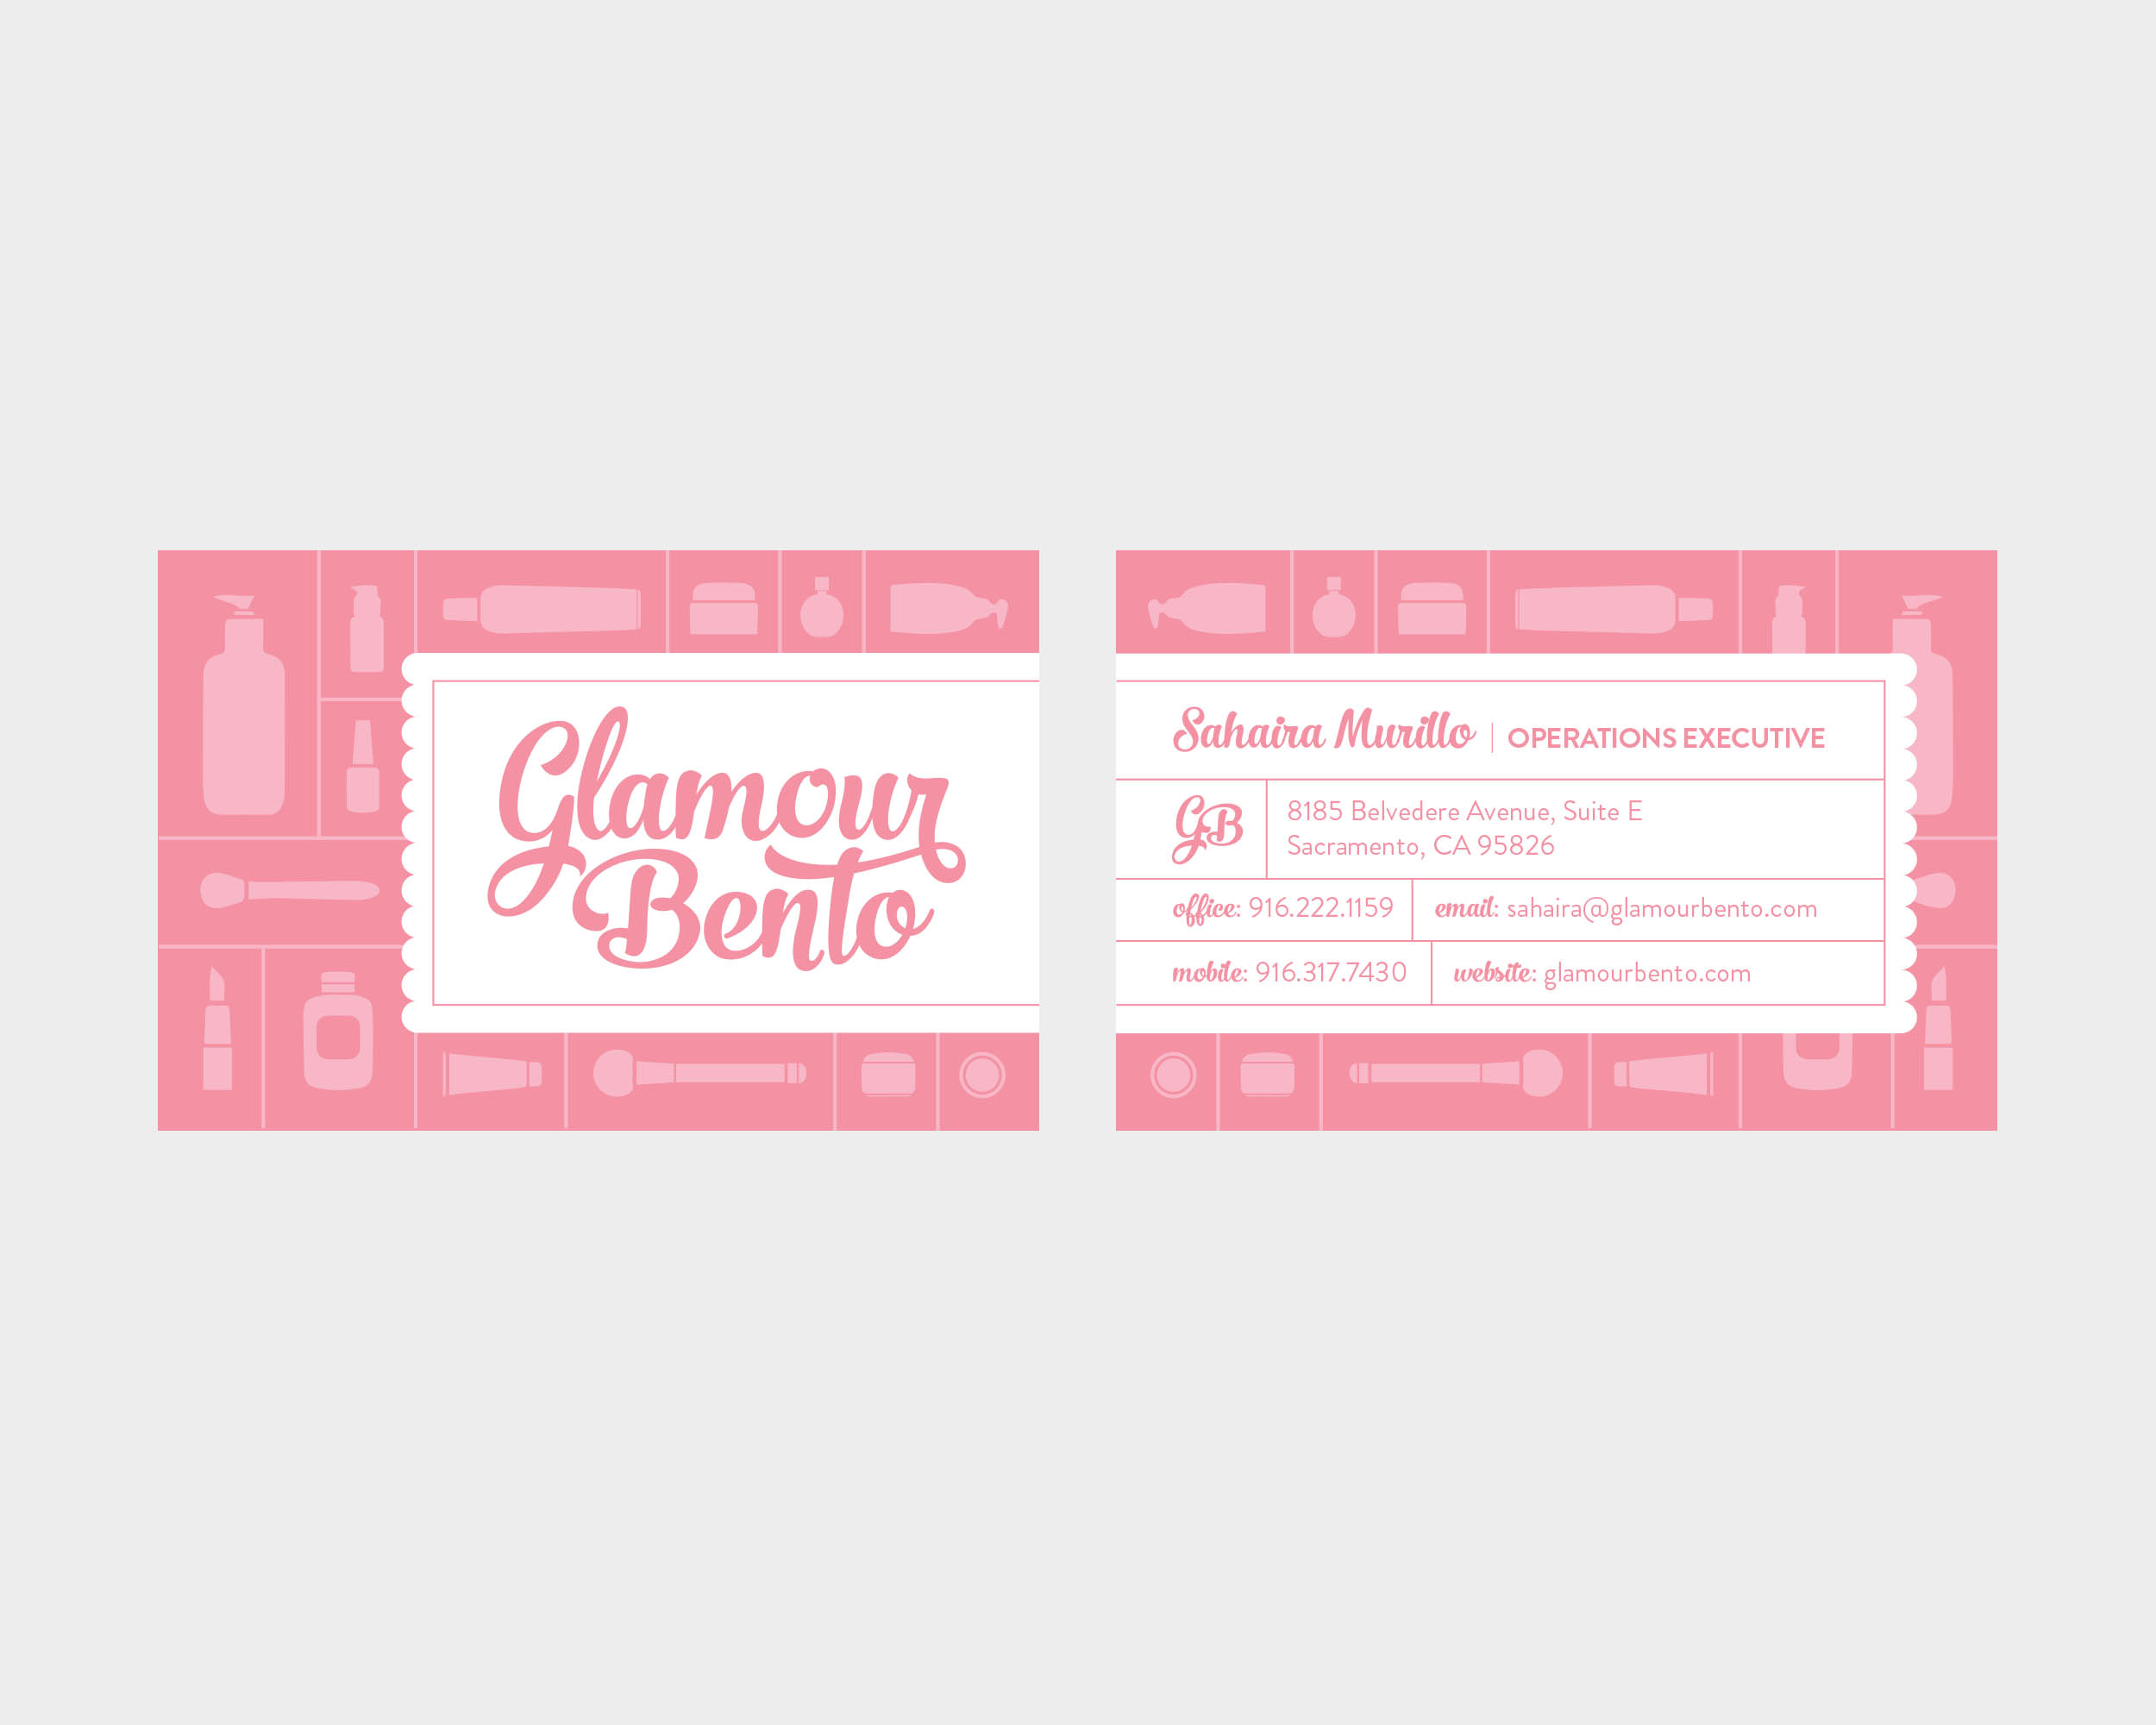 Glamour Bento Business Card Design